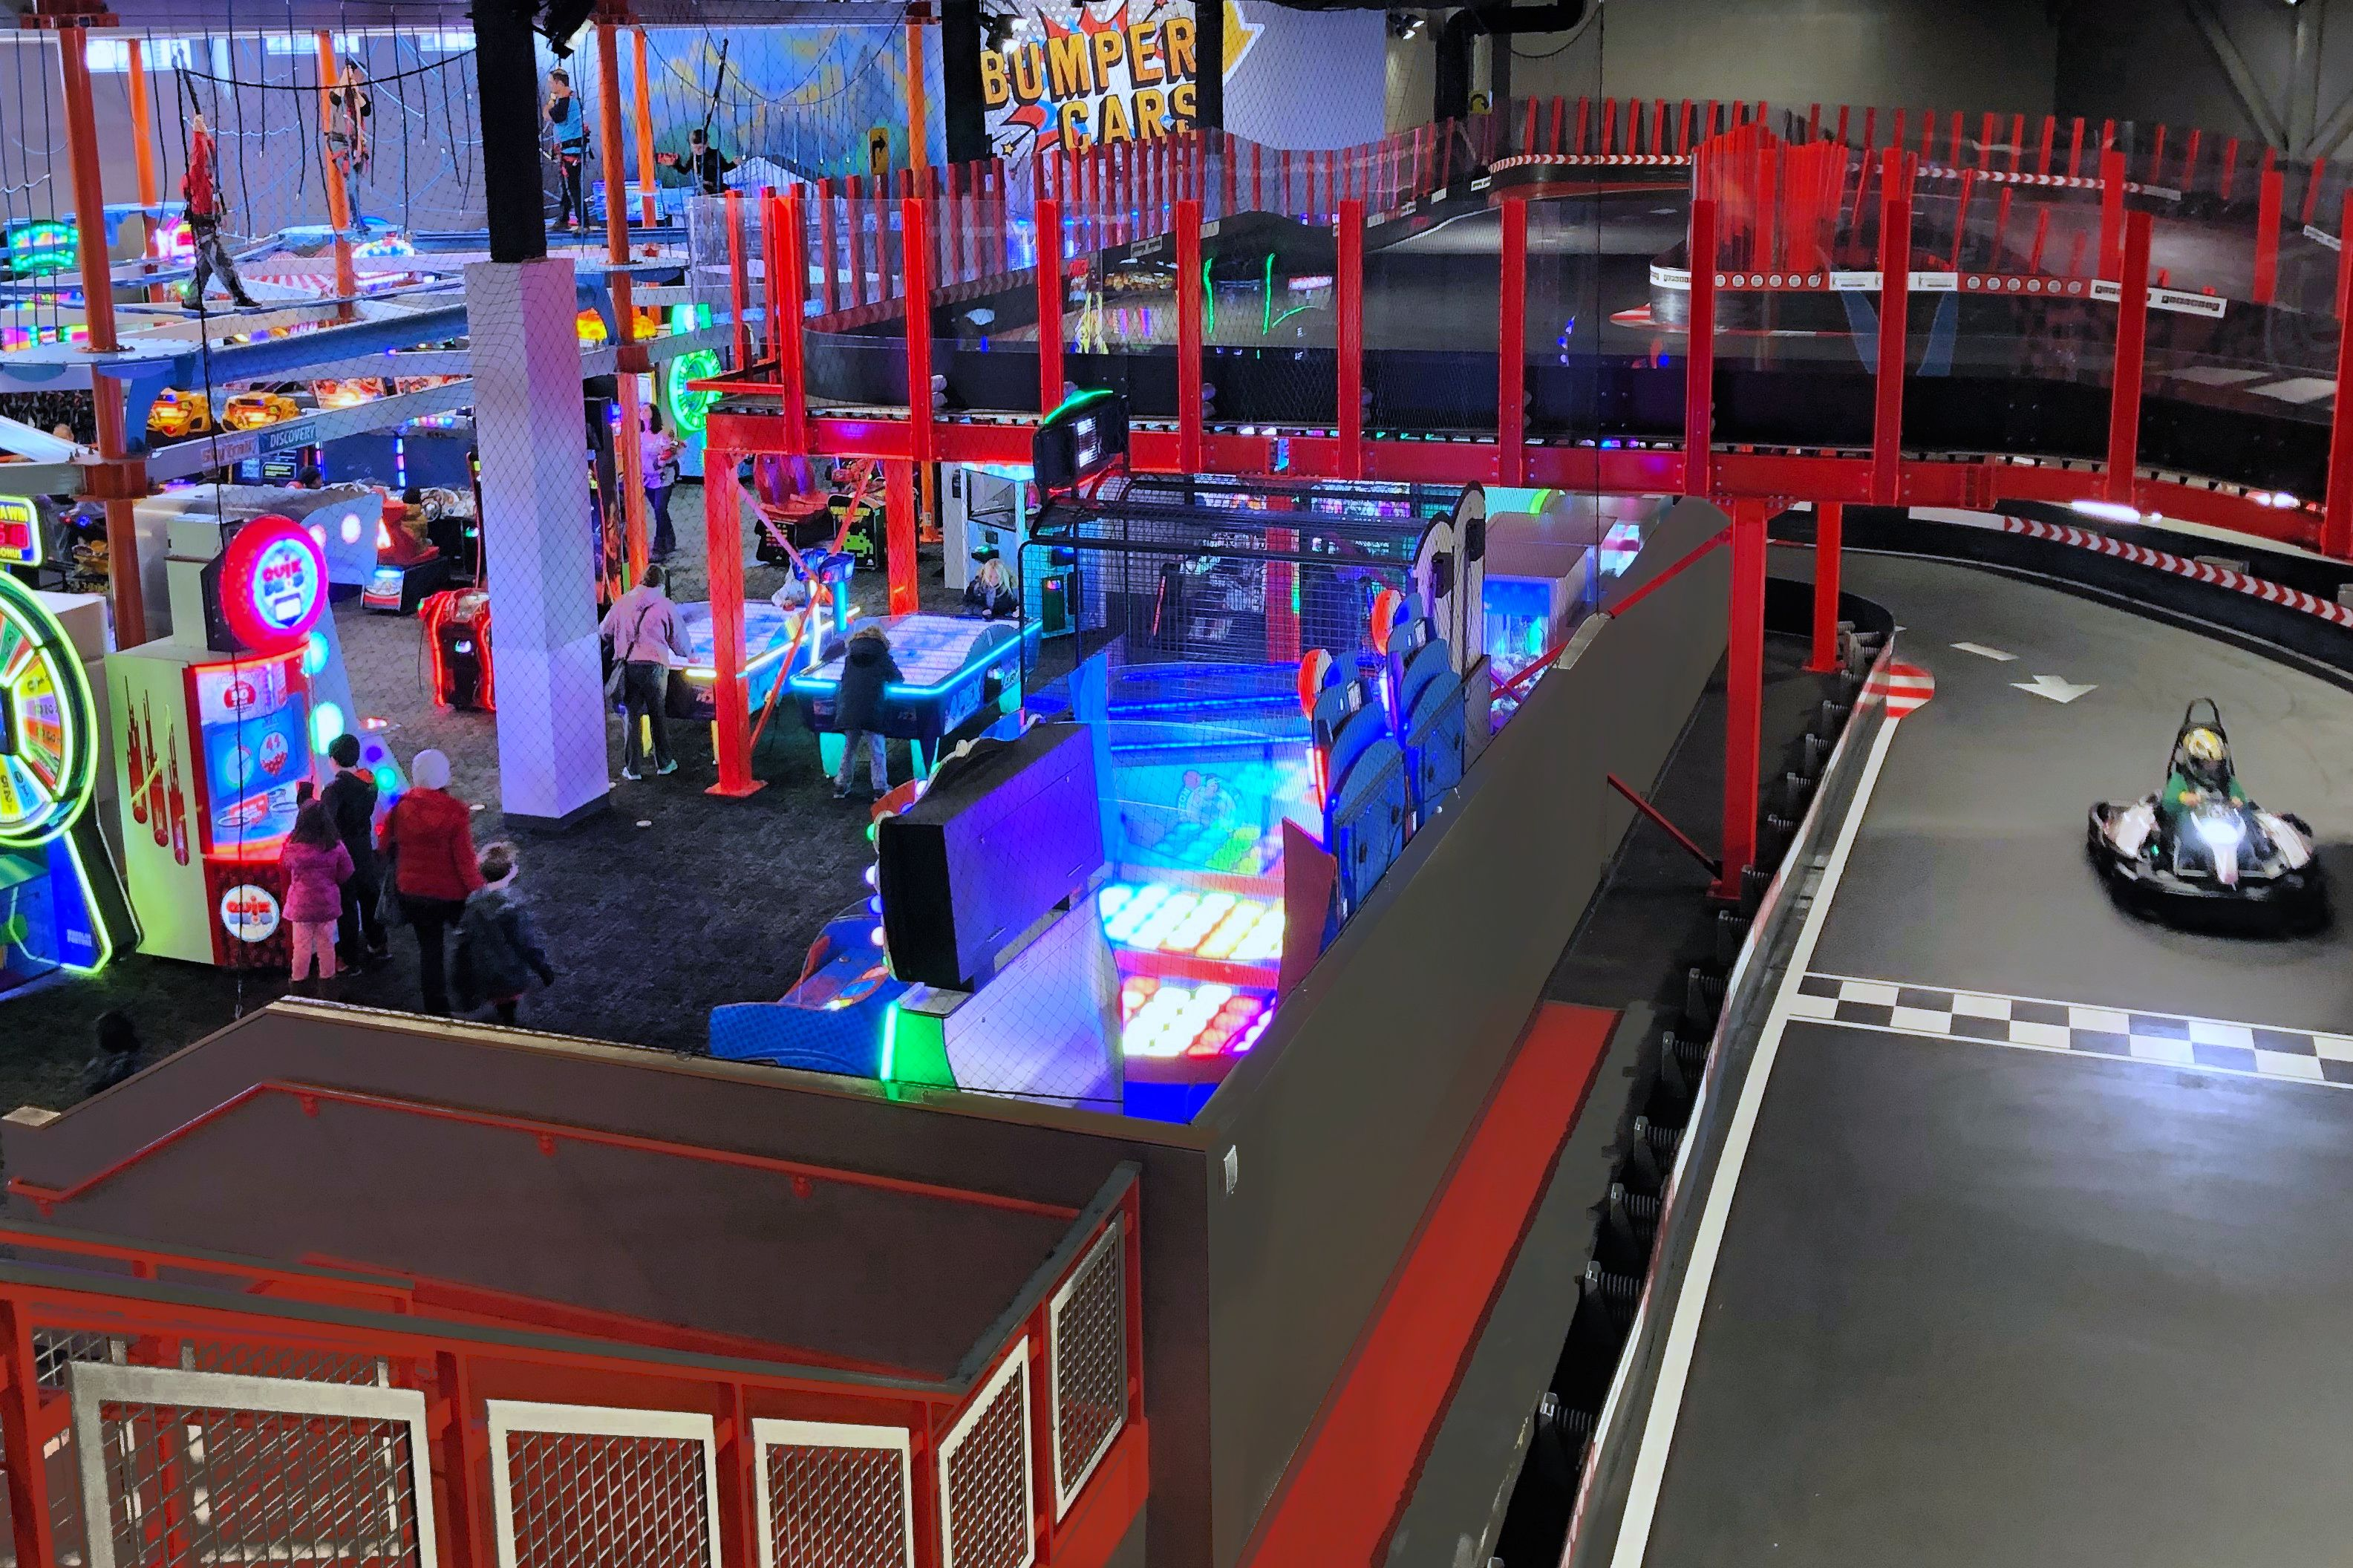 Is New England S Biggest Family Entertainment Center The Apex Of Fun For Boston Kids Family Entertainment Diy Entertainment Tv Entertainment Centers